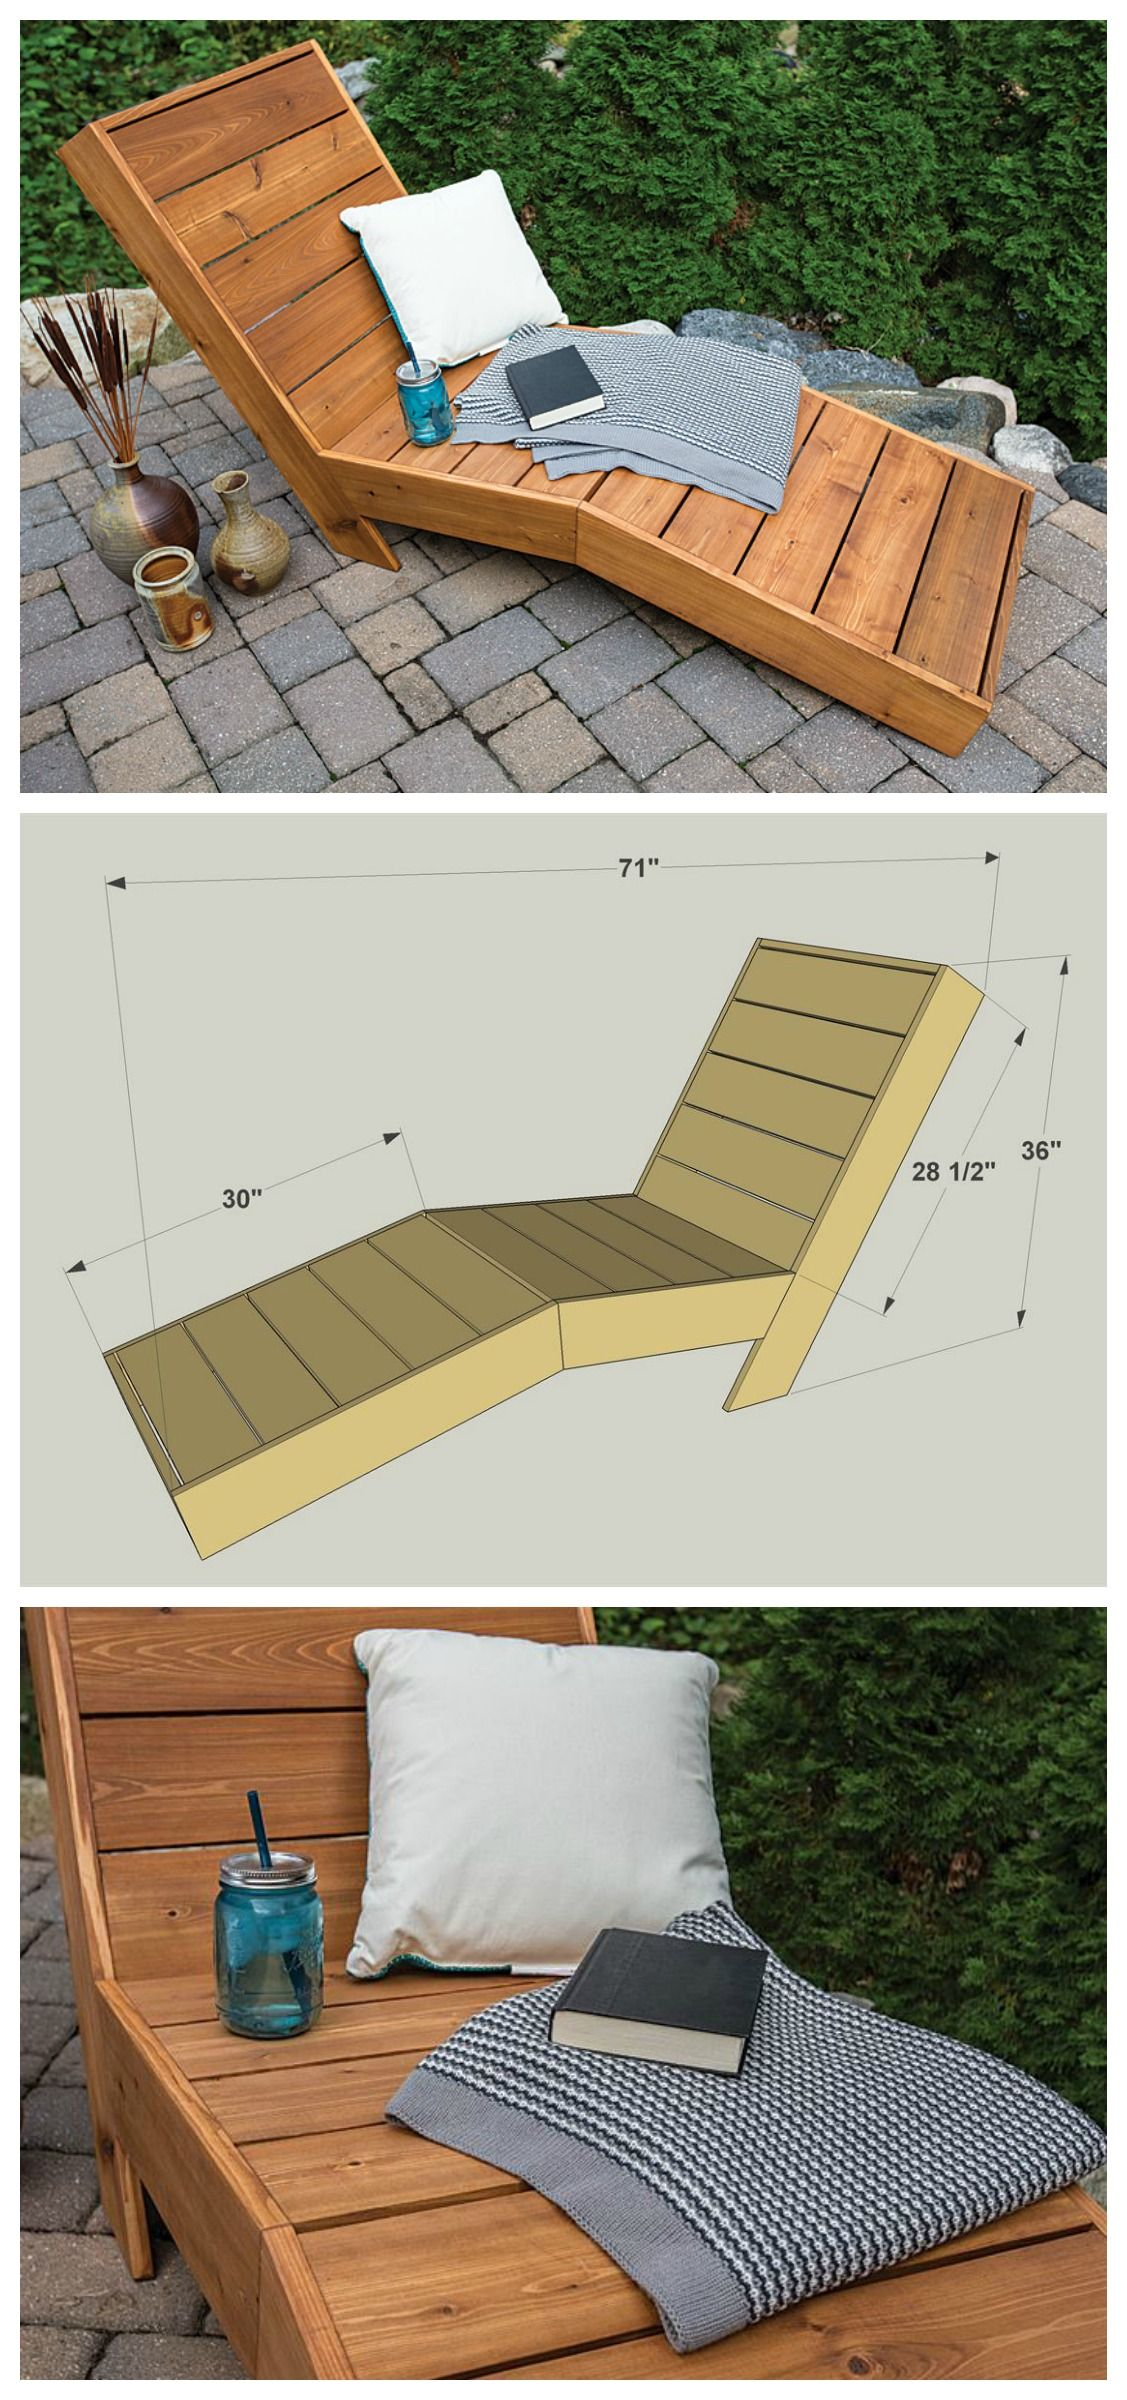 diy outdoor chaise lounge free plans at buildsomething com wood